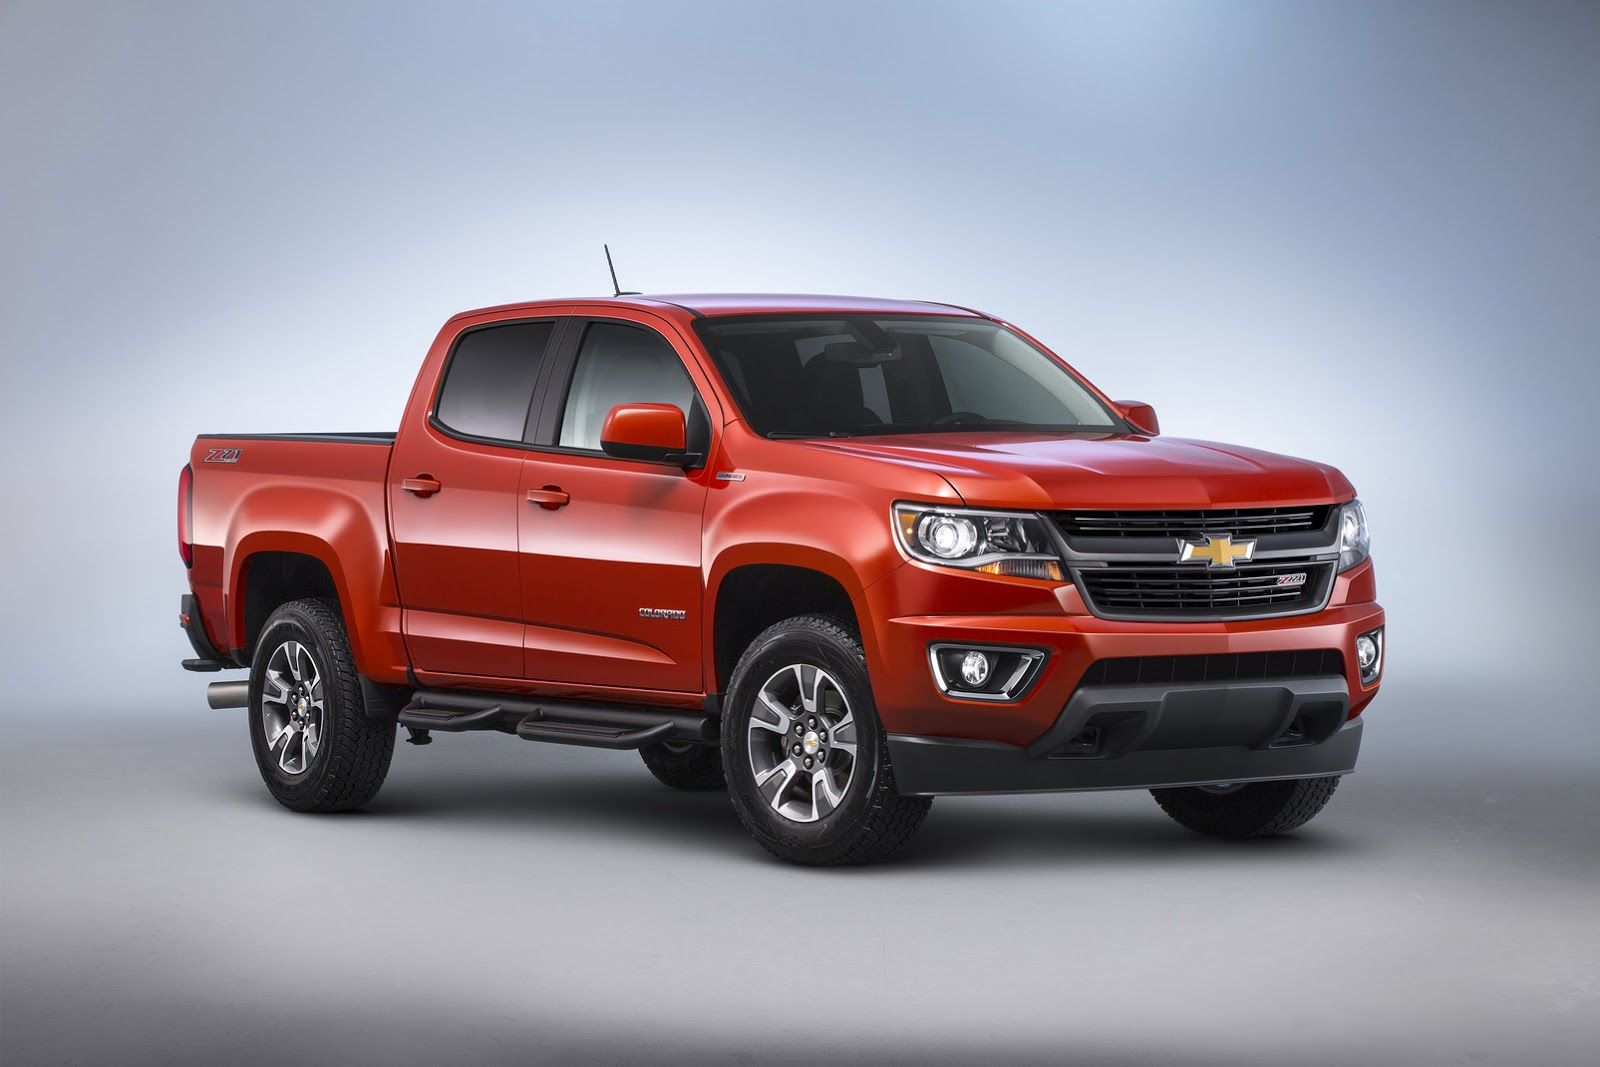 Chevy Truck Wheels >> 2016 Chevy Colorado And GMC Canyon Gain Diesel Engine In The USA | Carscoops